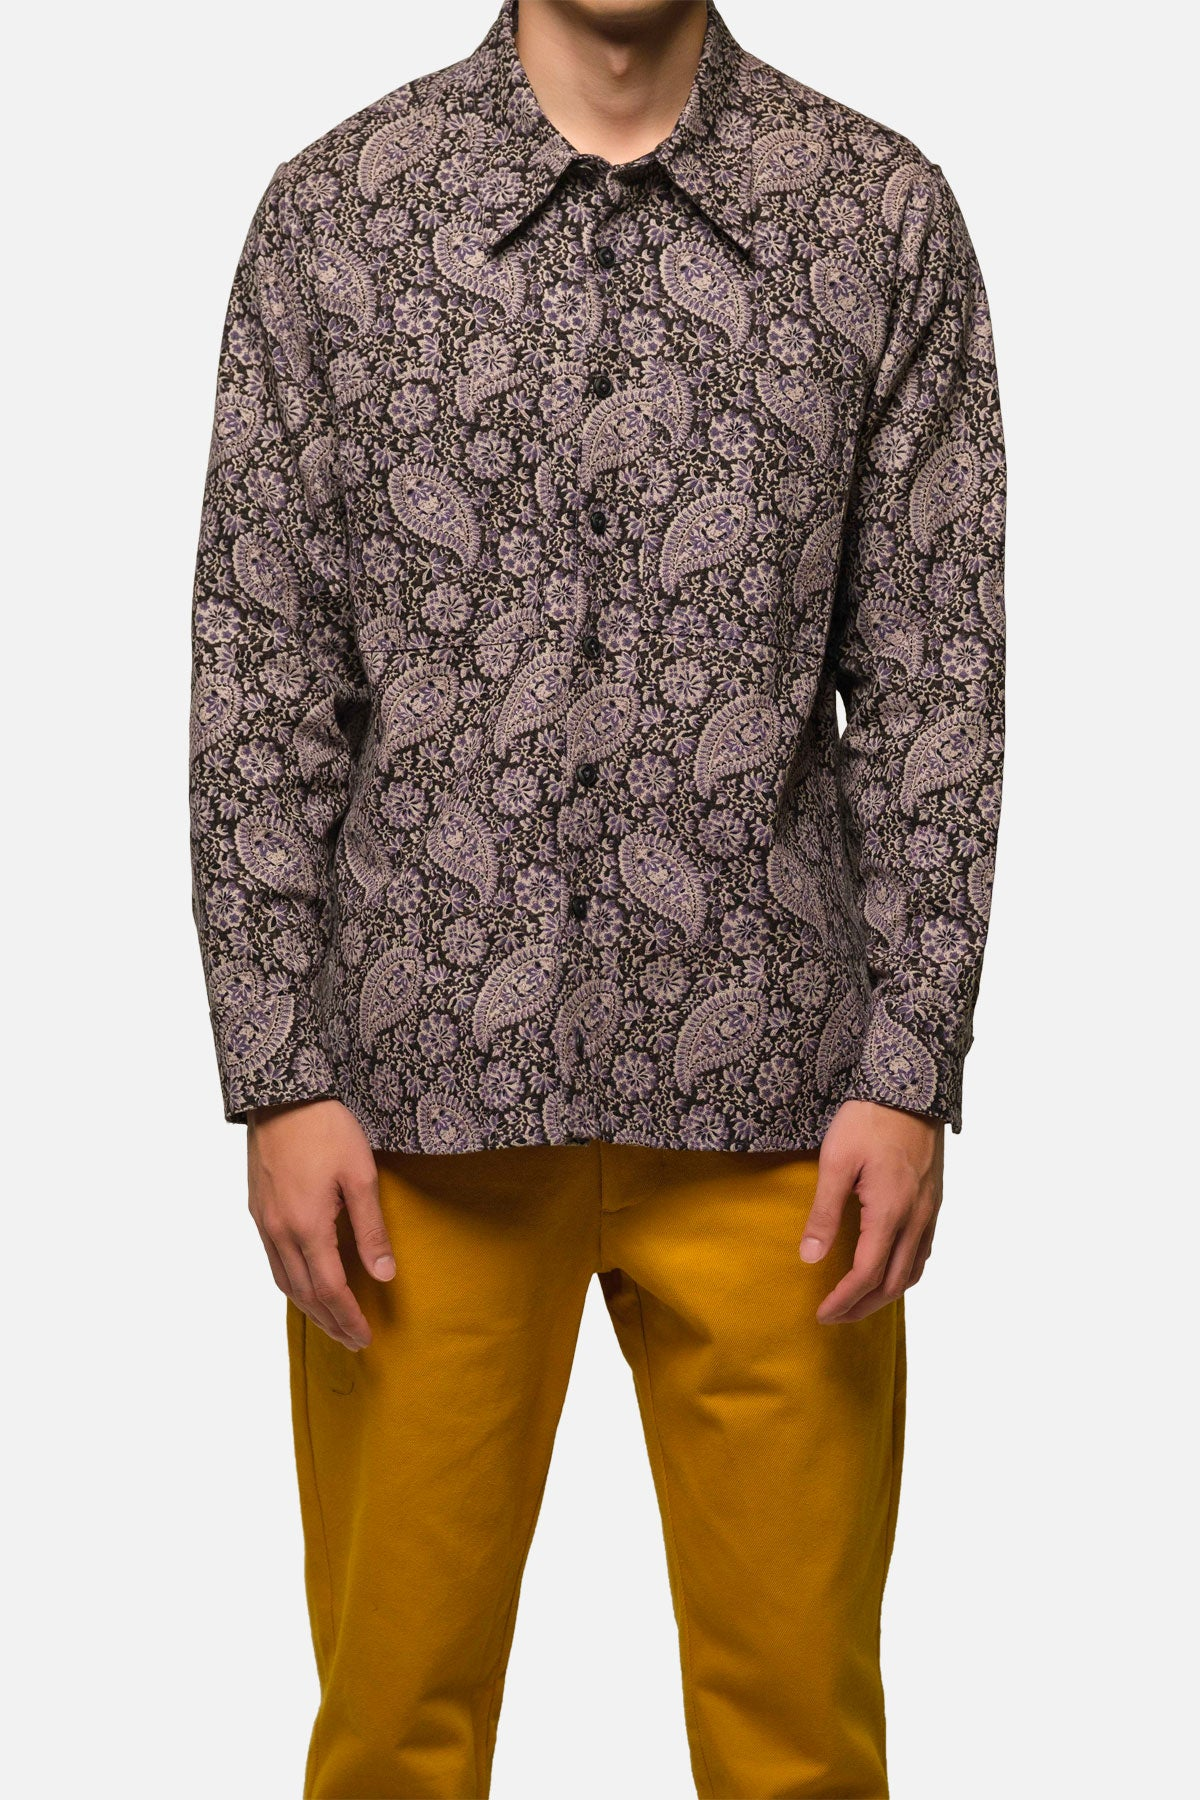 BROADWAY SHIRT IN PURPLE PAISLEY - Fortune Goods